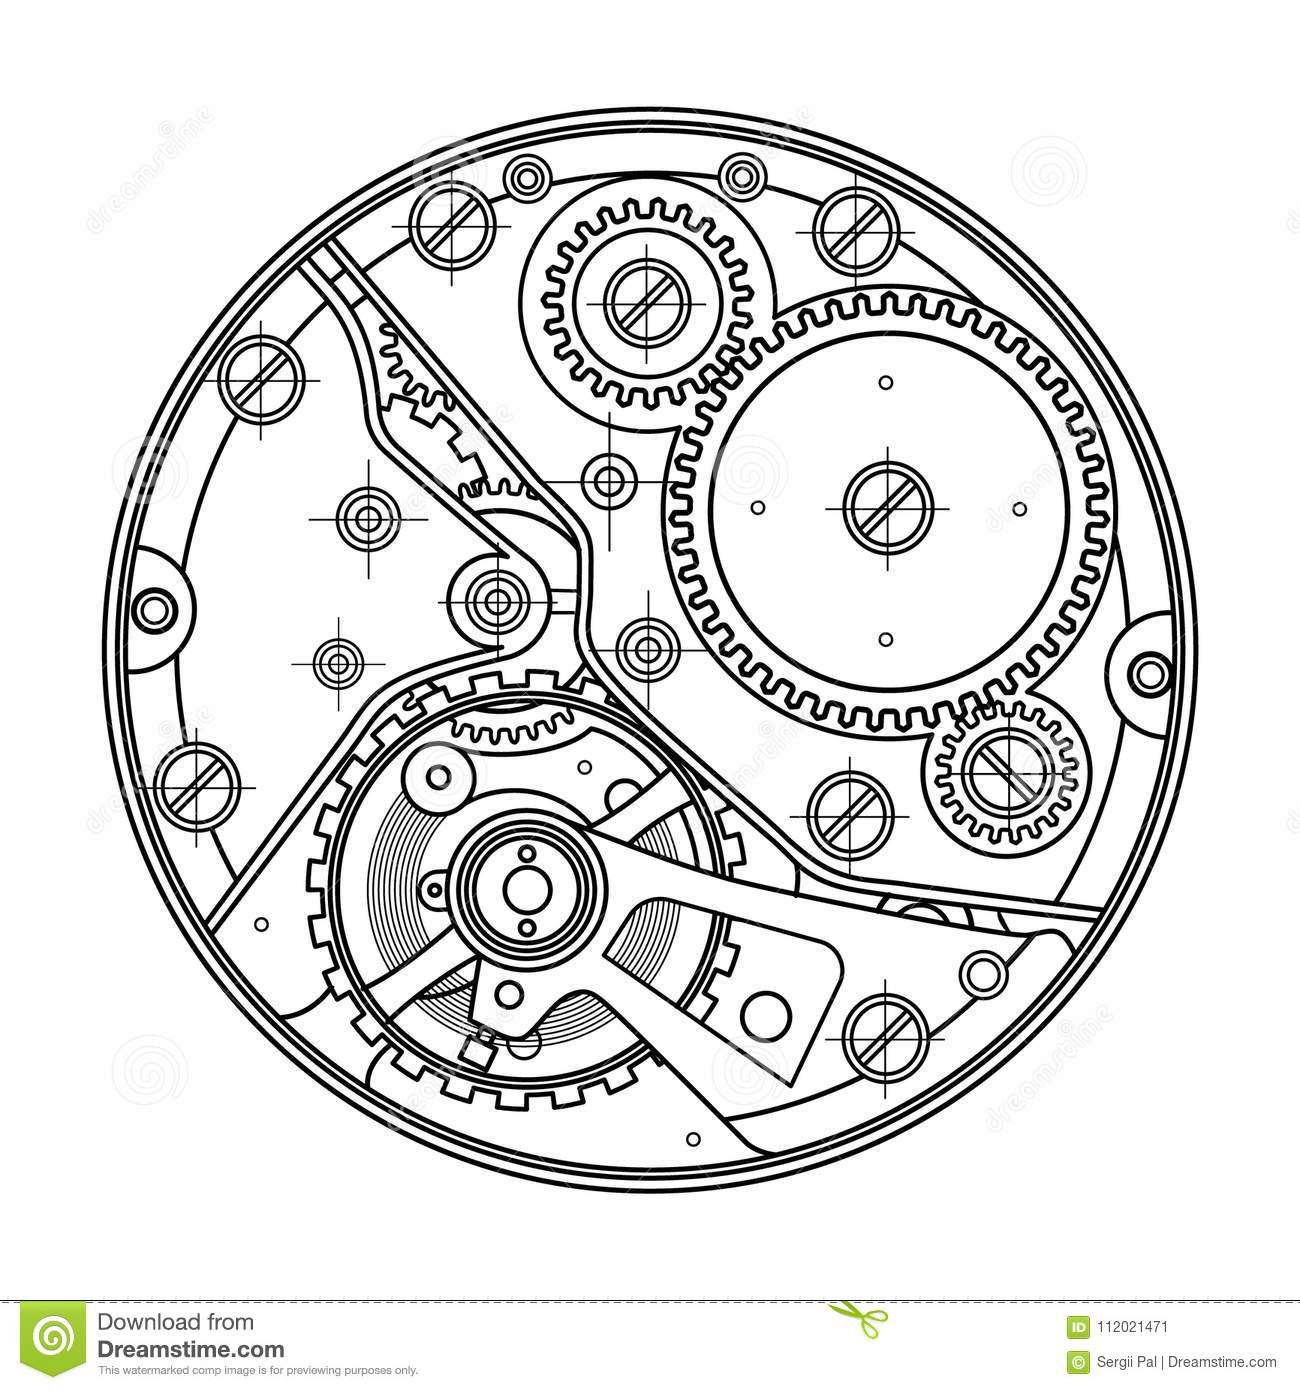 Mechanical Watches With Gears Drawing Of The Internal